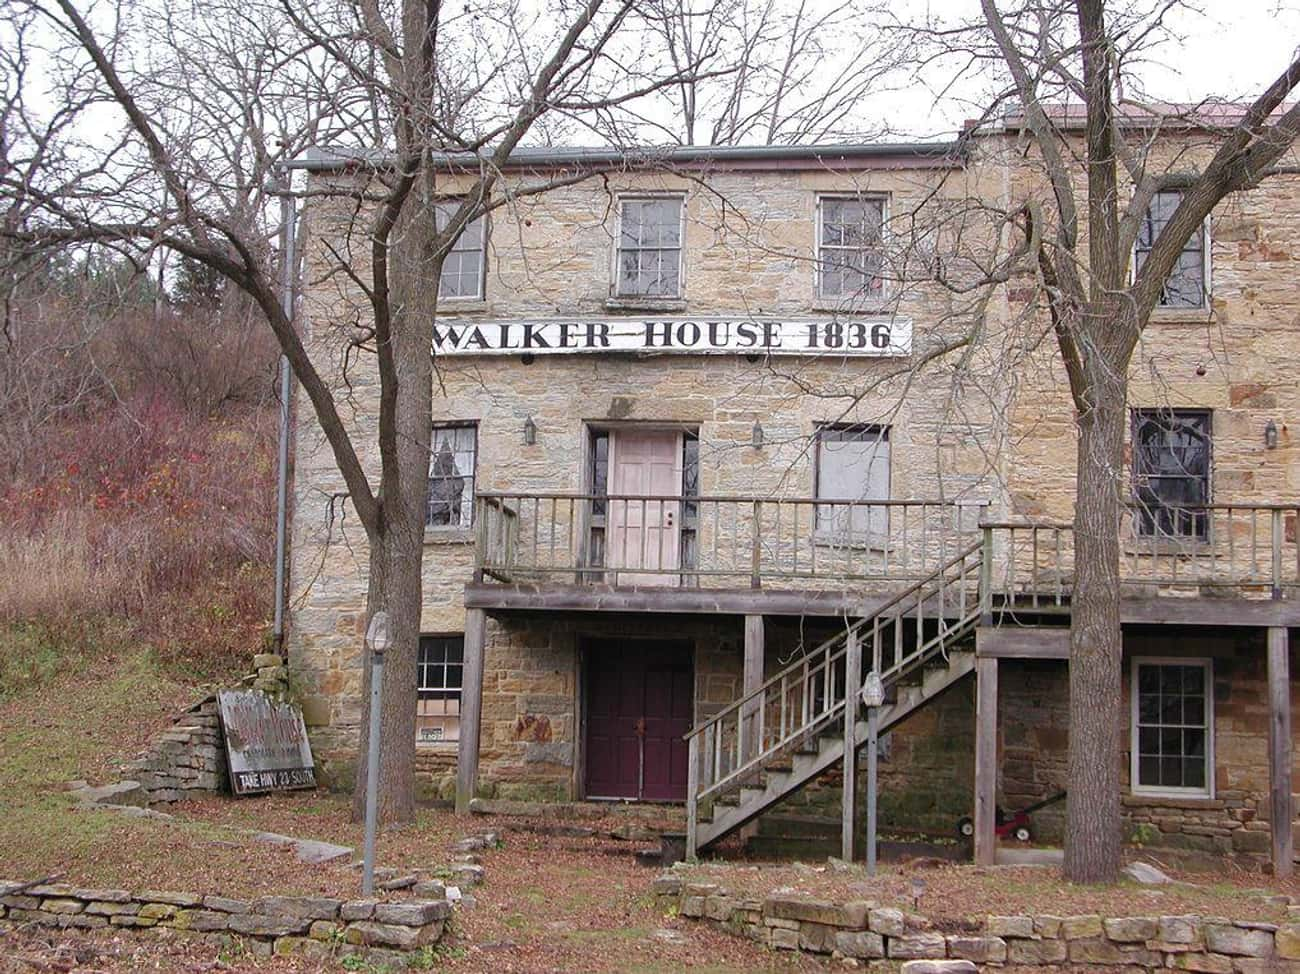 Mineral Point Is Also Known For The Haunted Walker House